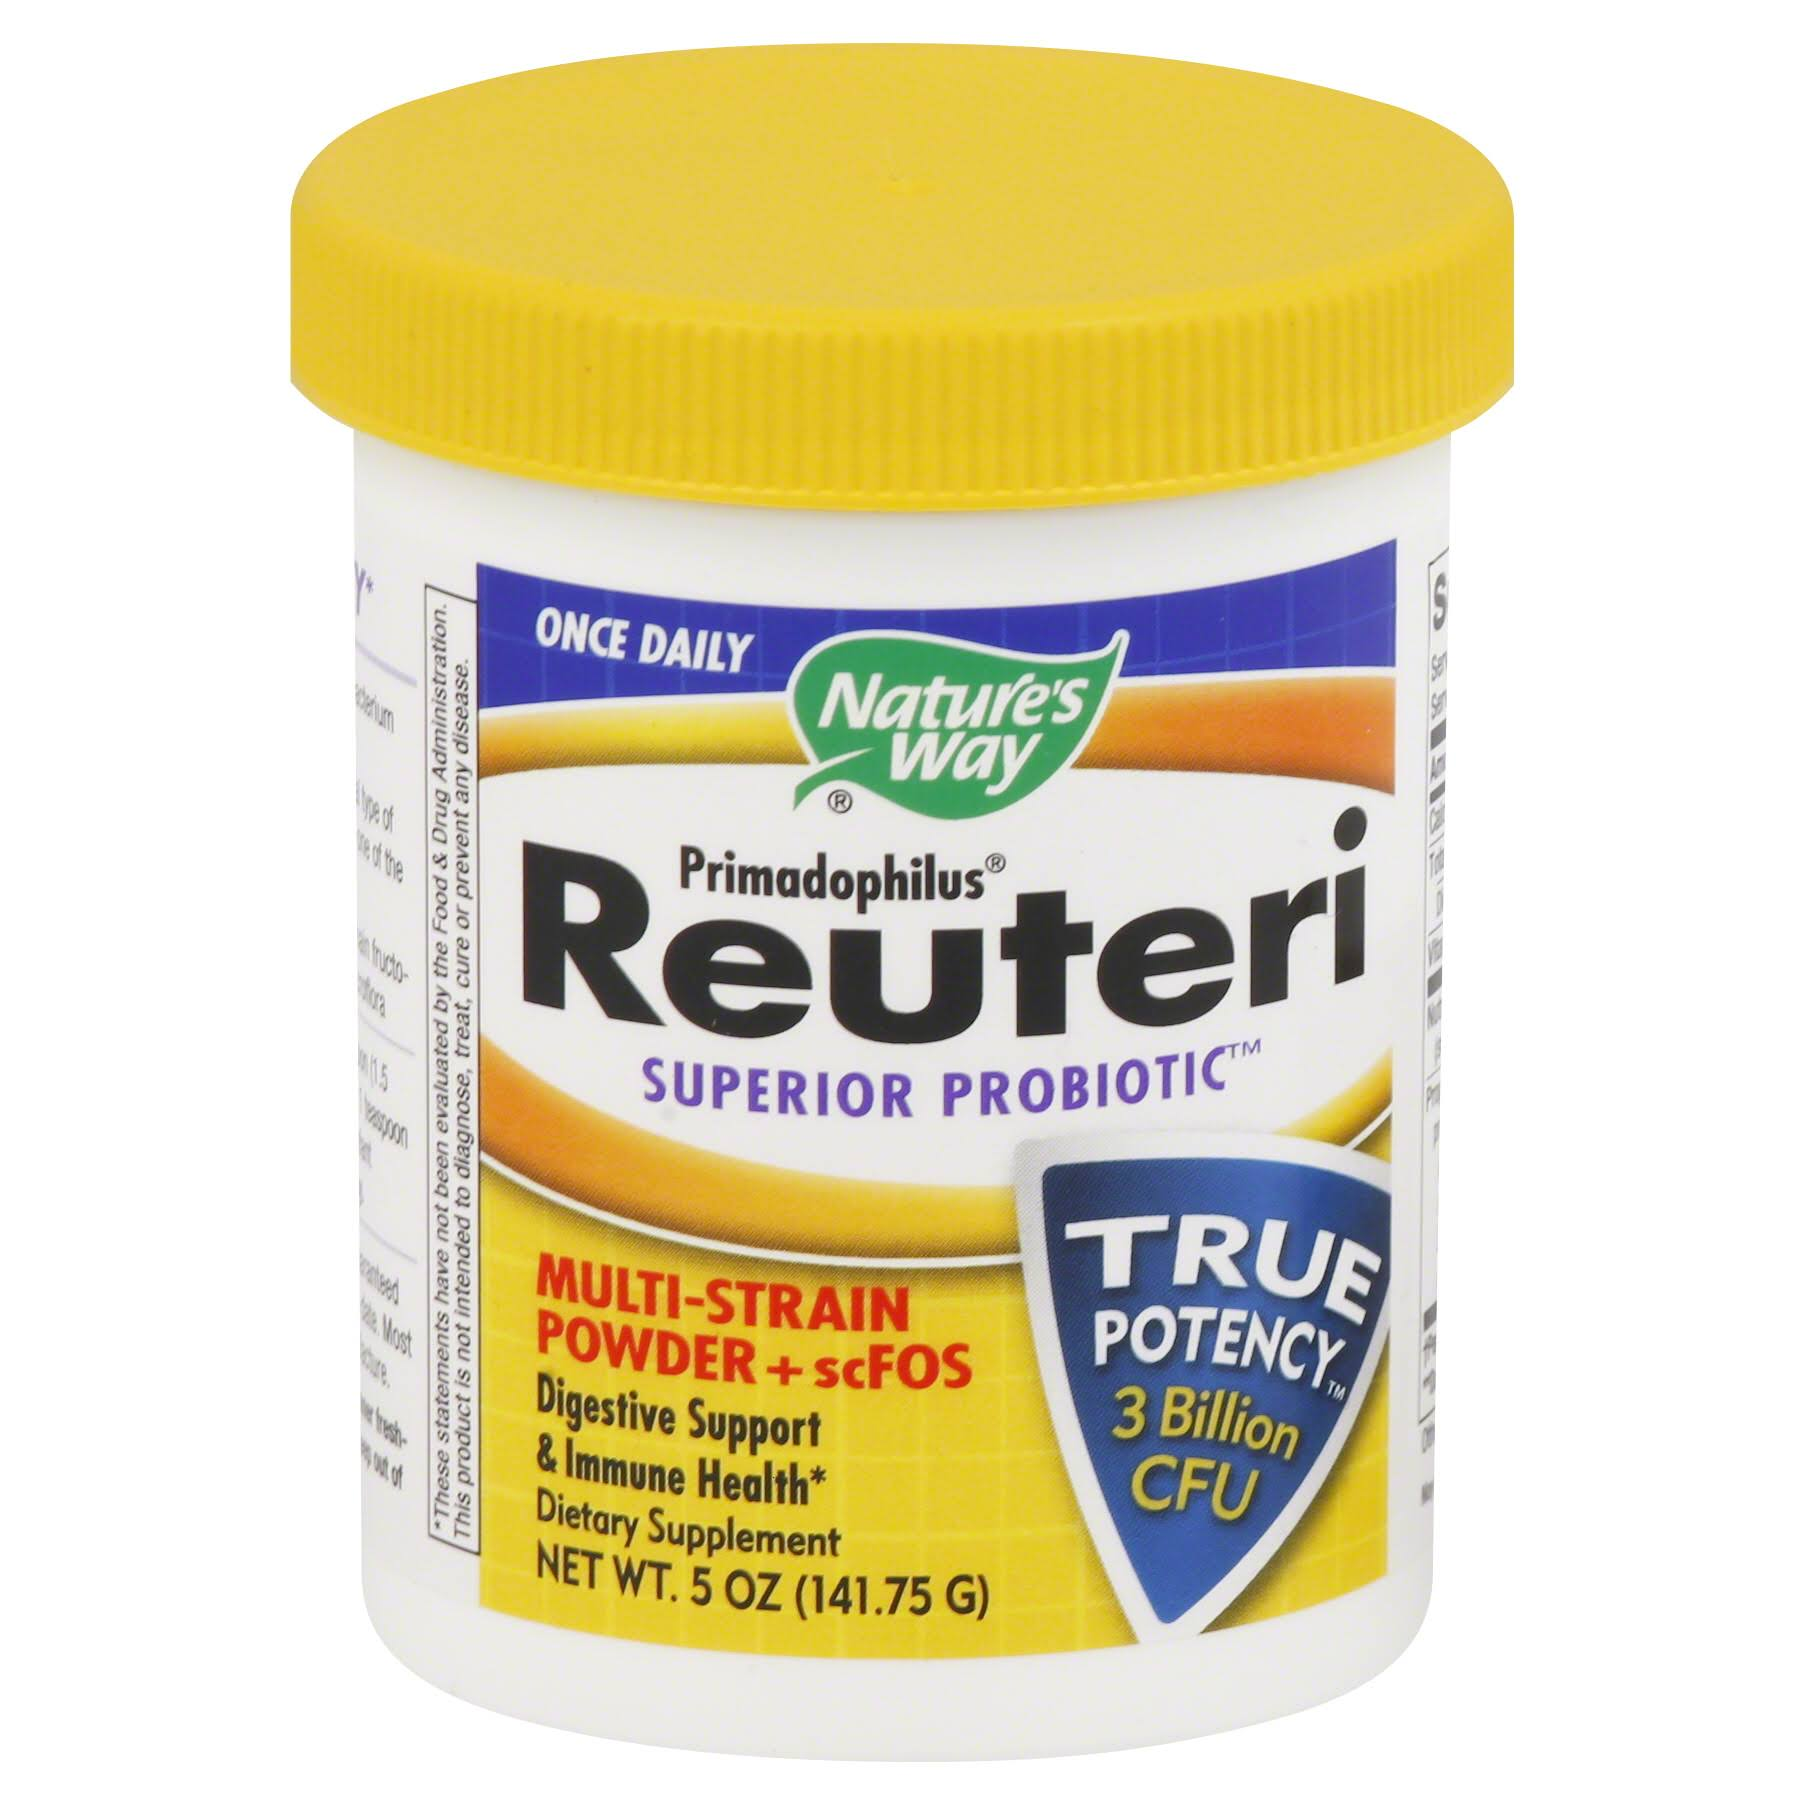 Nature's Way Primadophilus Reuteri - 5 oz